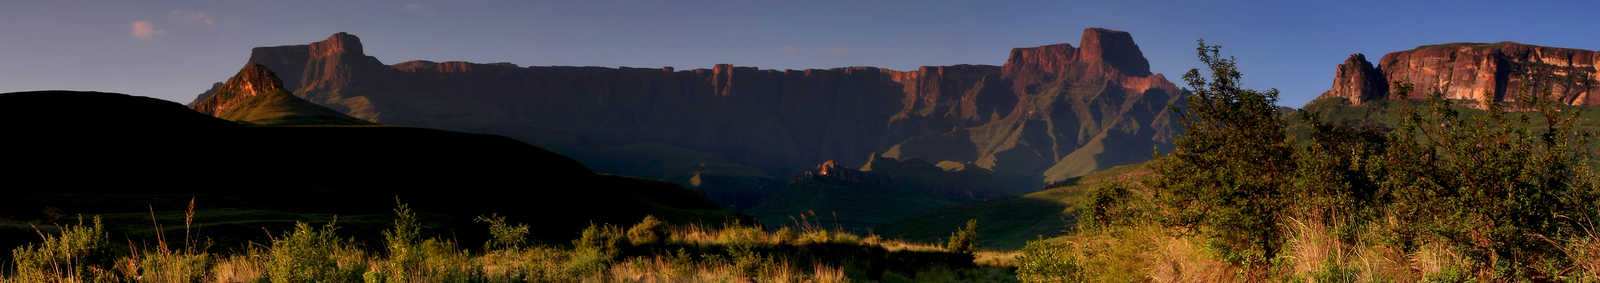 Drankesberg mountains in South Africa